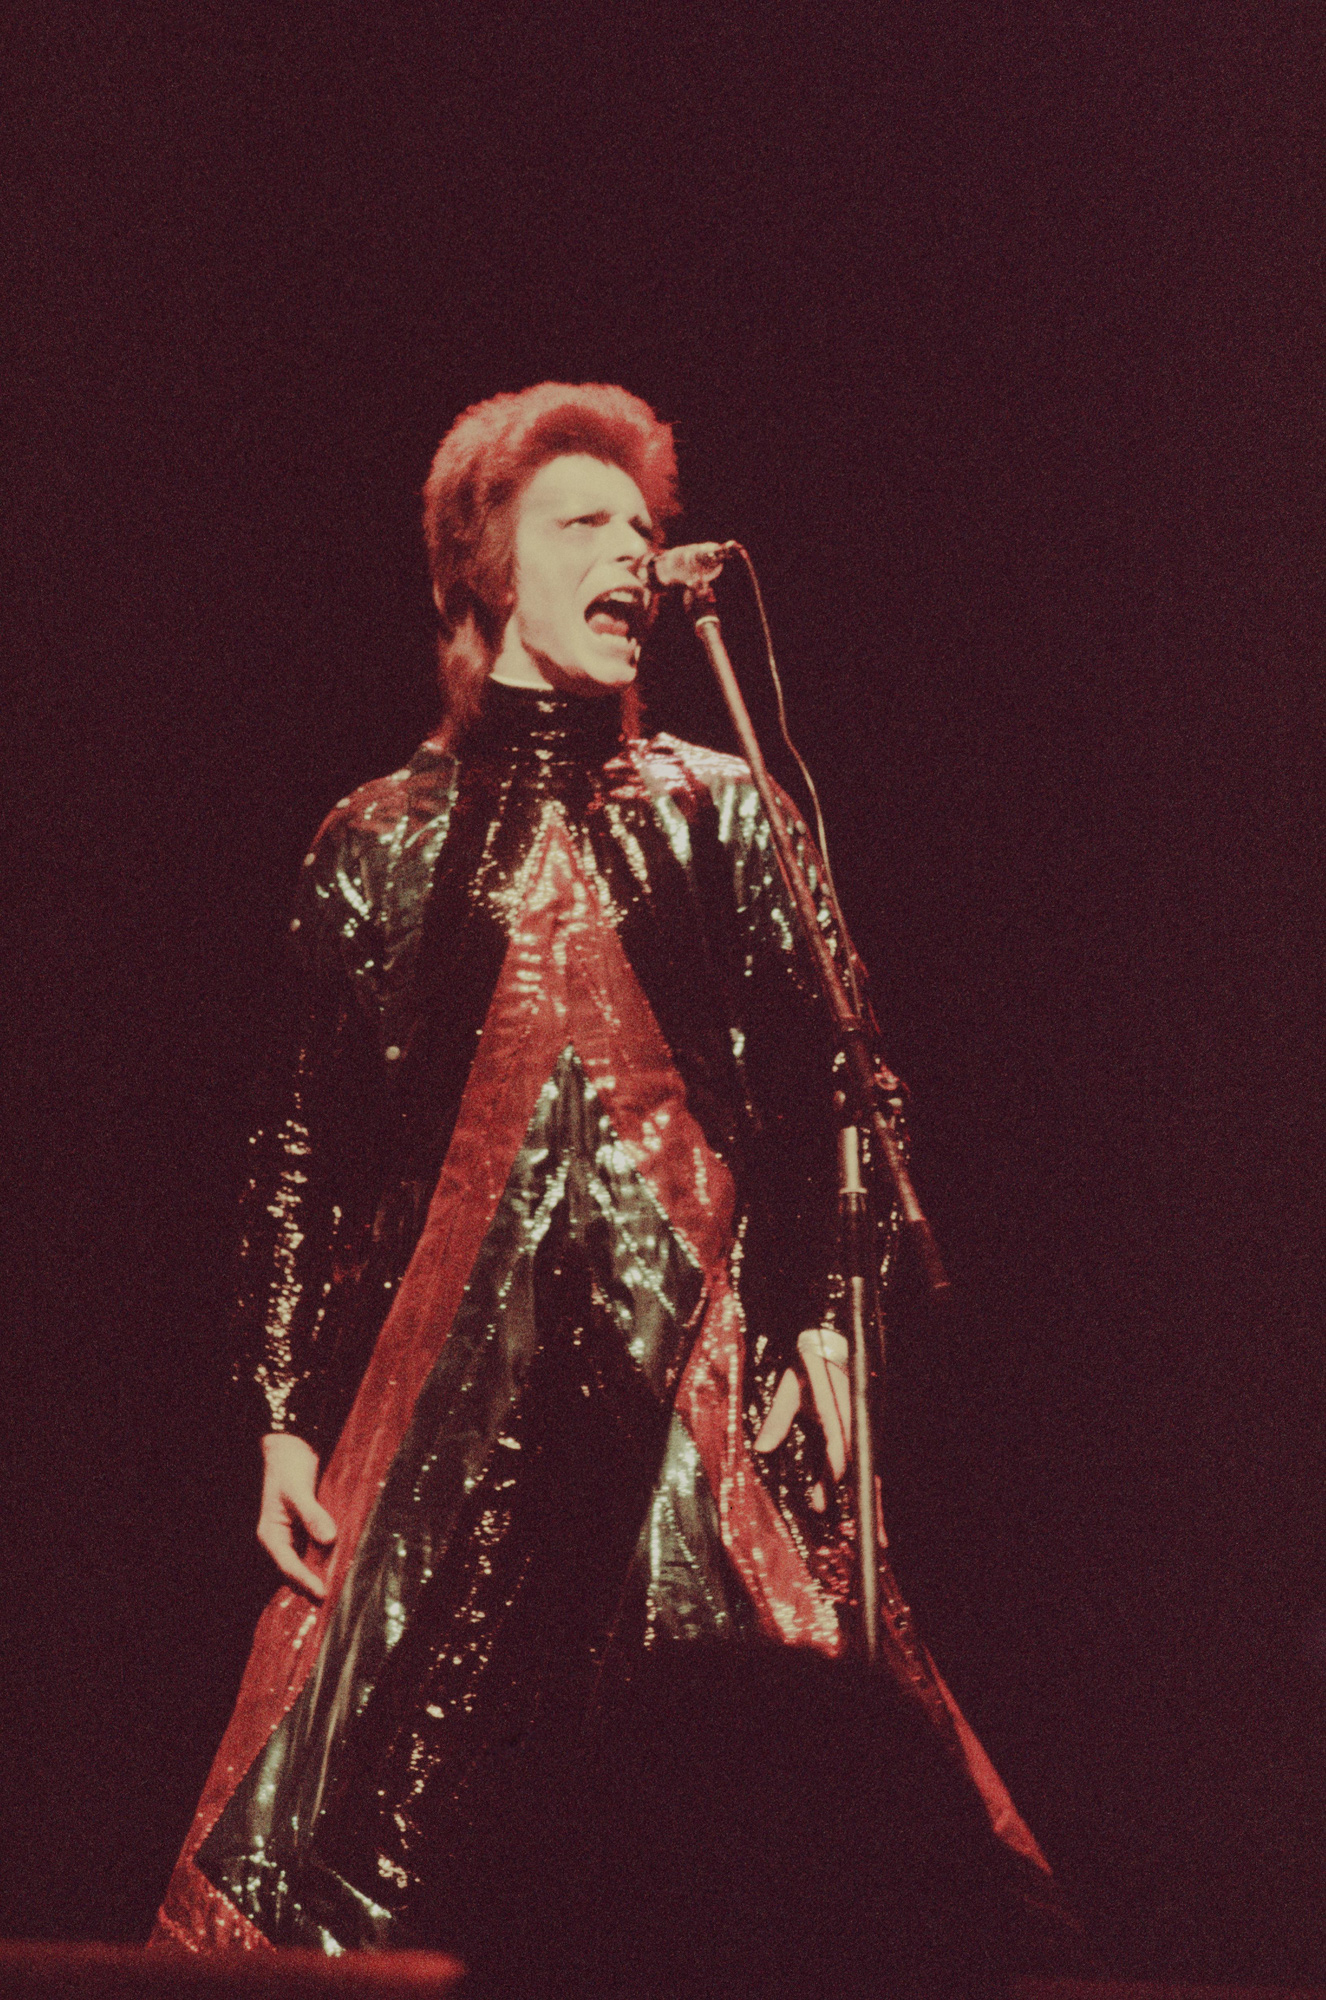 David Bowie in concert in Tokyo as part of the Ziggy Stardust tour.